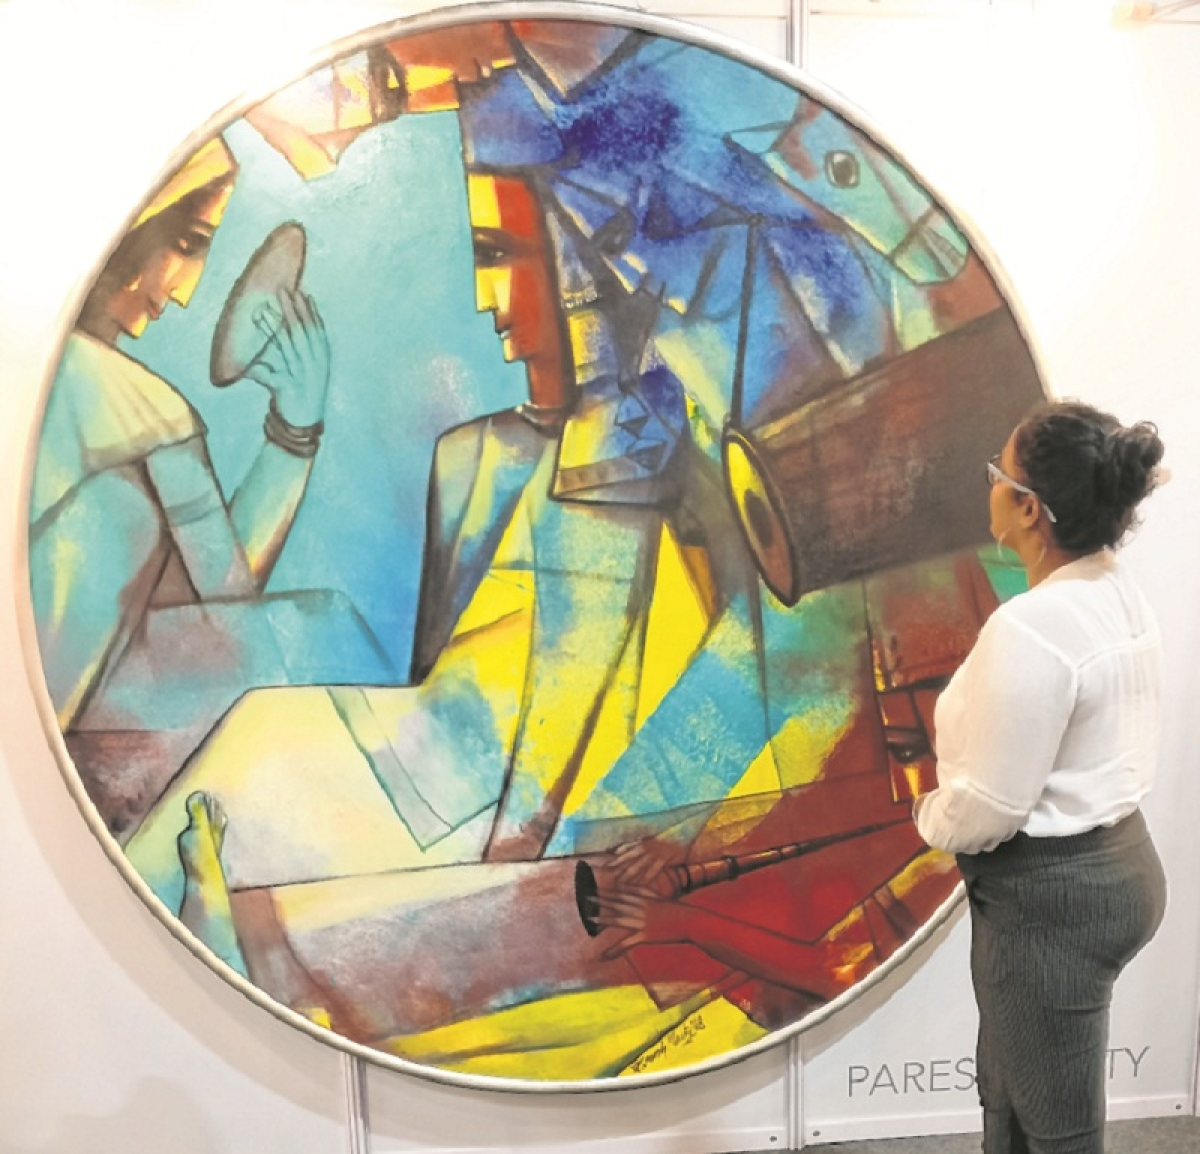 4-day art fest in Bhayandar